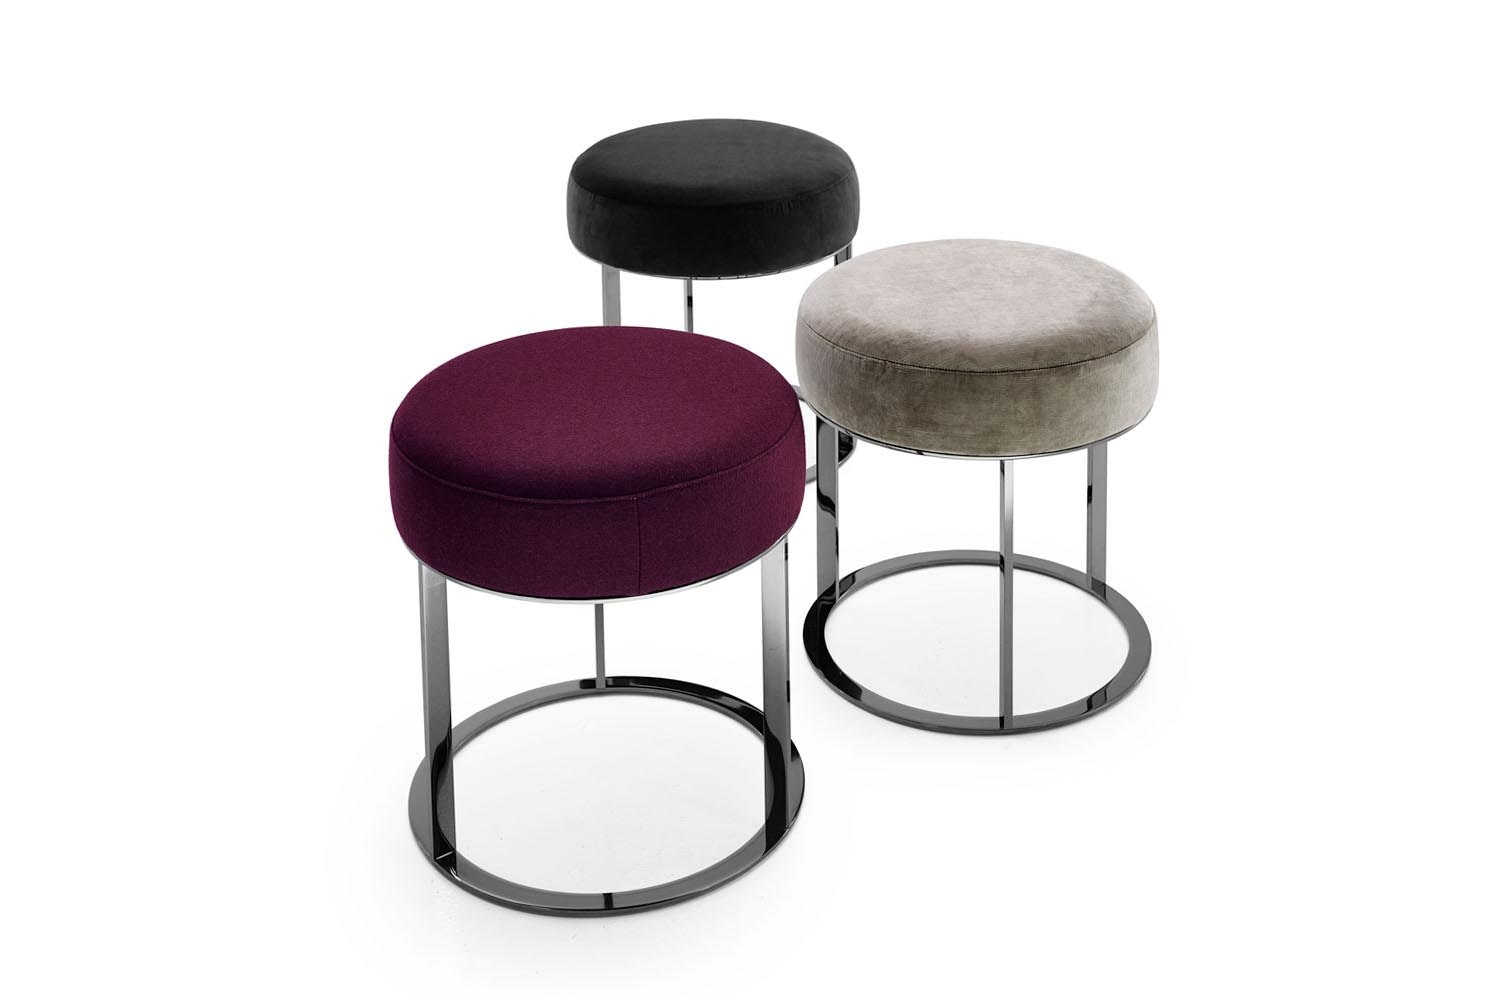 Frank Ottoman by Antonio Citterio for B&B Italia